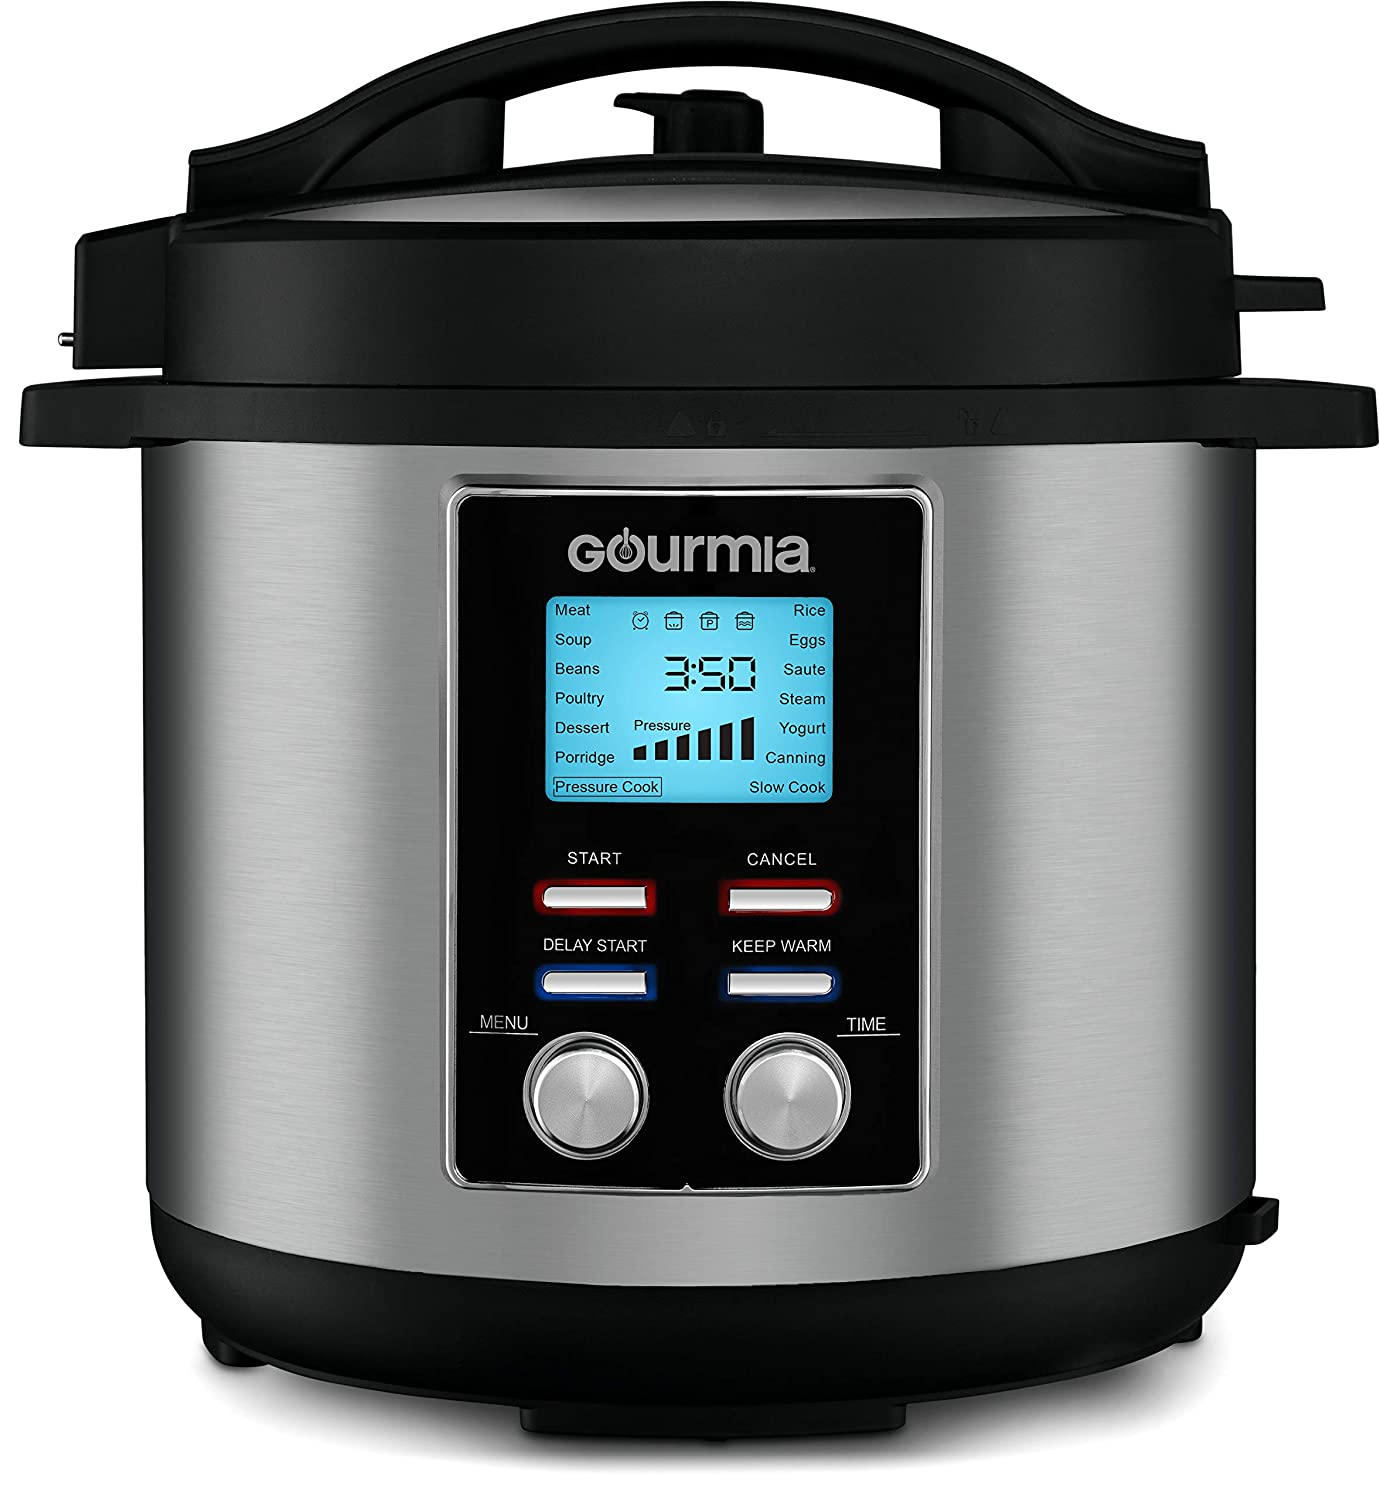 Gourmia GPC855 8 Qt Digital SmartPot Multi-Function Pressure Cooker | 15 Cook Modes | Removable Nonstick Pot | 24-Hour Delay Timer | Automatic Keep Warm | LCD Display | Pressure Sensor Lid Lock